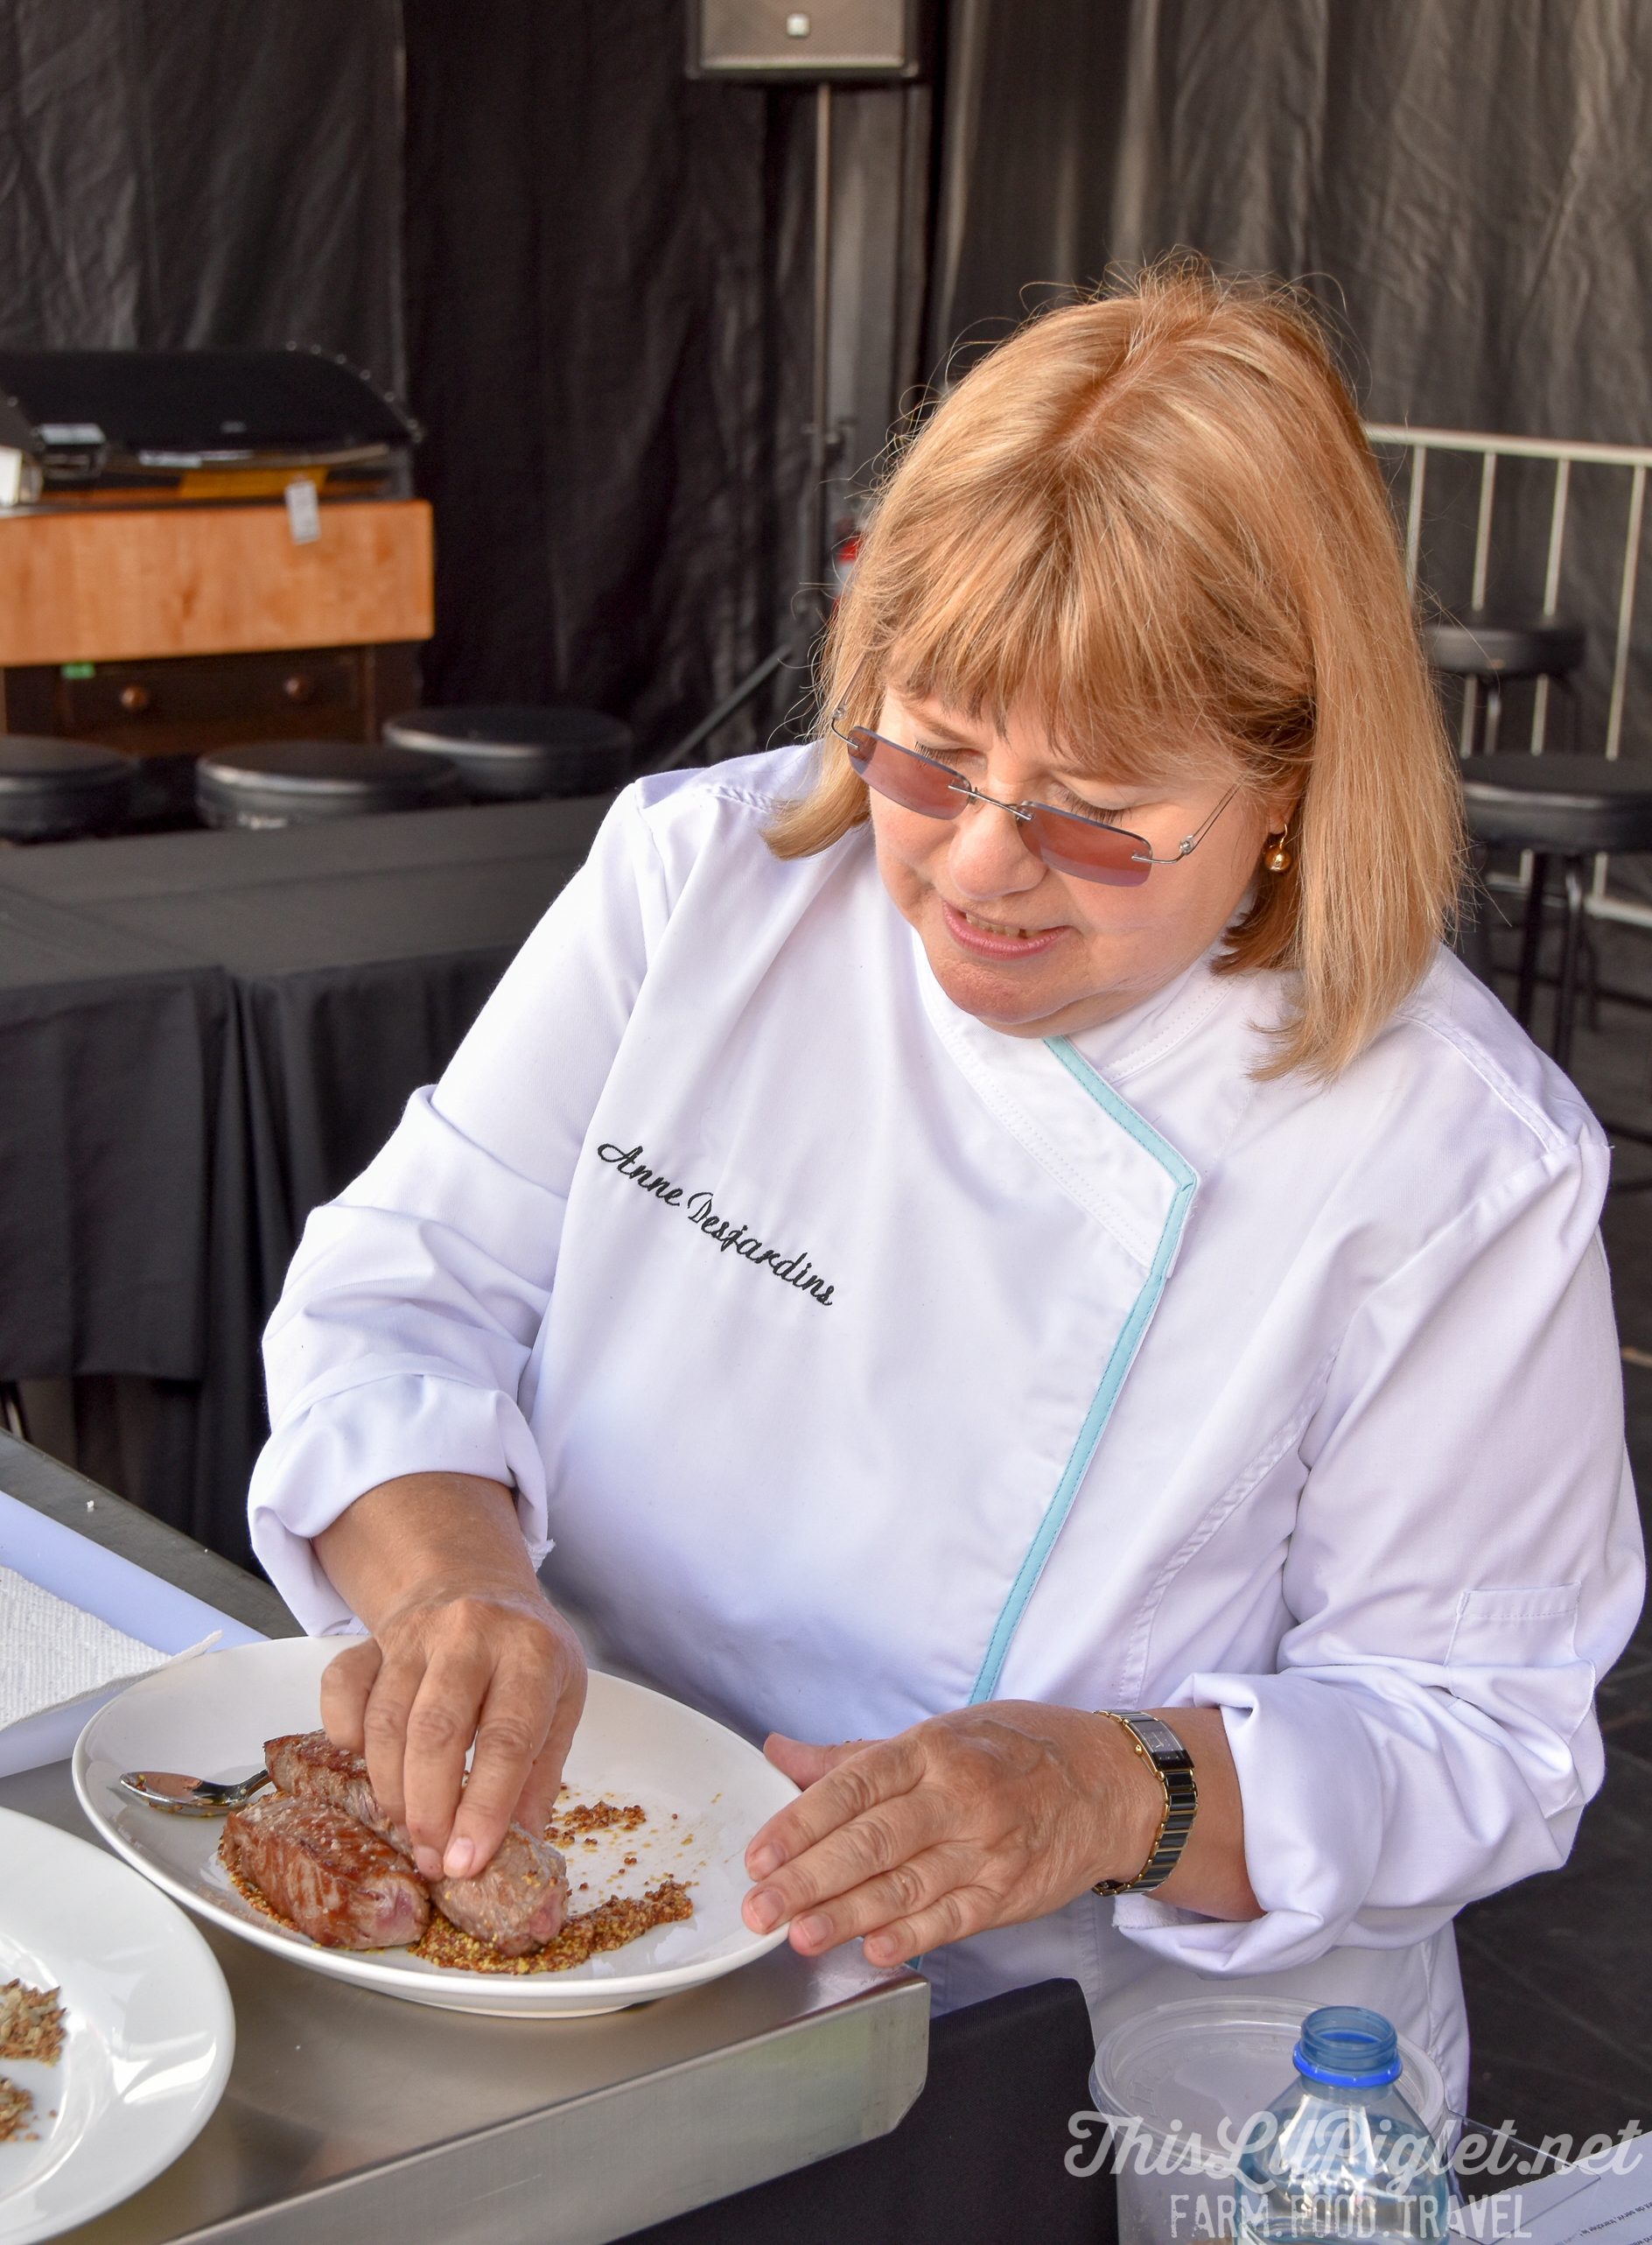 Chef Anne Desjardins at Tremblant Gourmand Mont Tremblant // @thislilpiglet